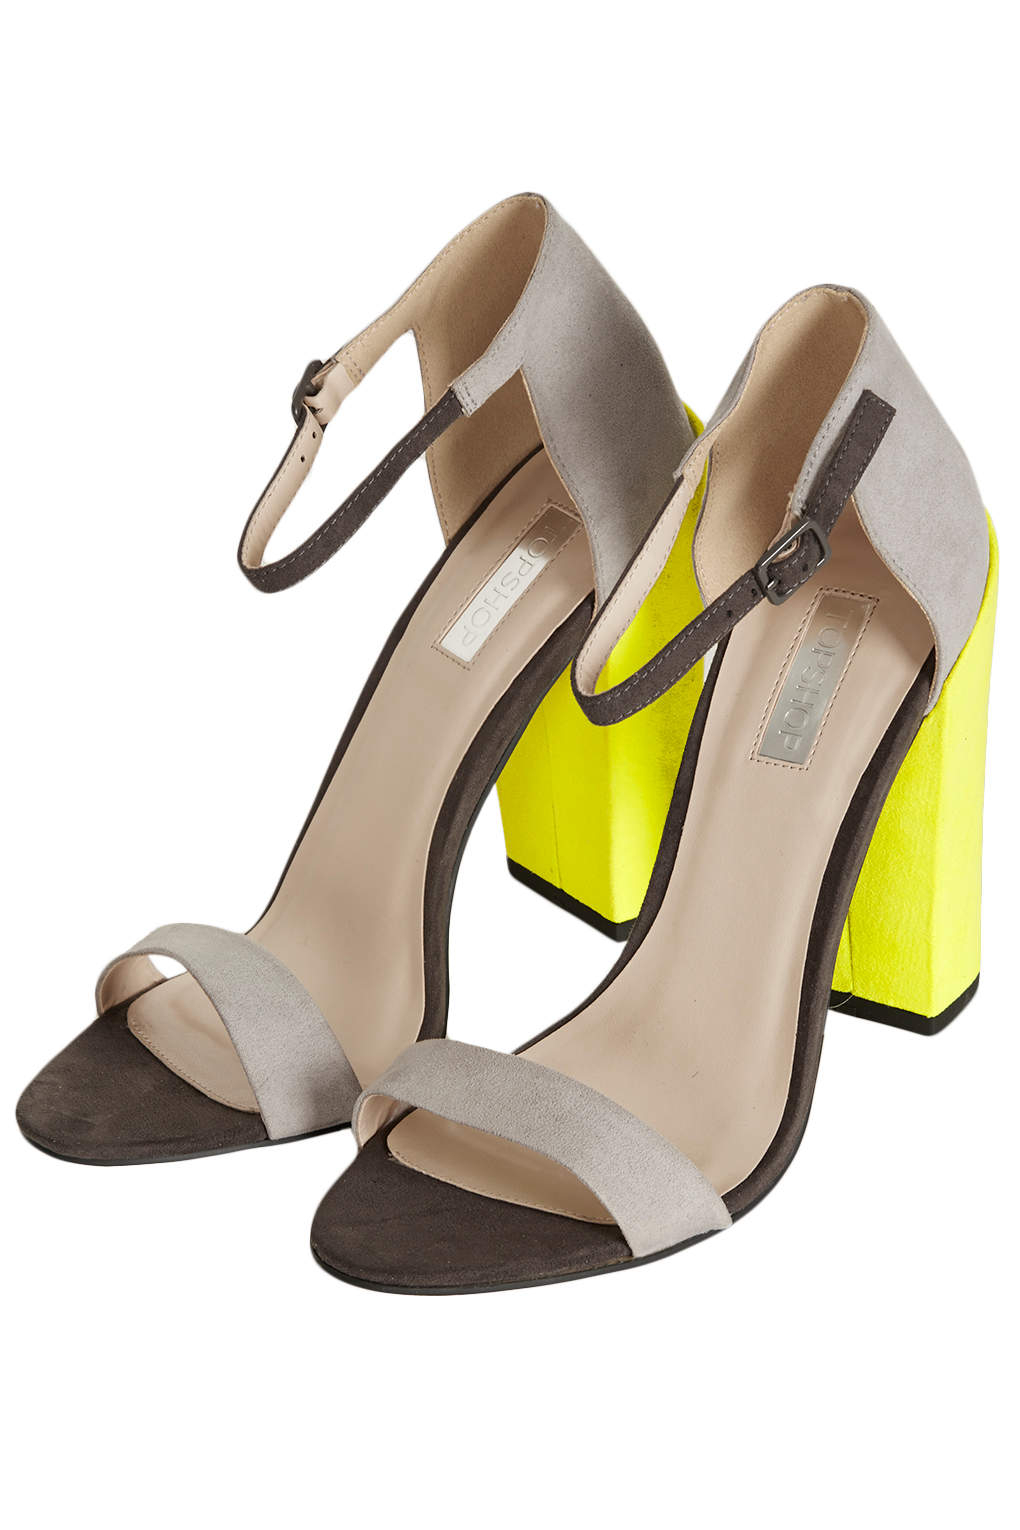 Lyst Topshop Ratchet Block Heel Sandals In Yellow